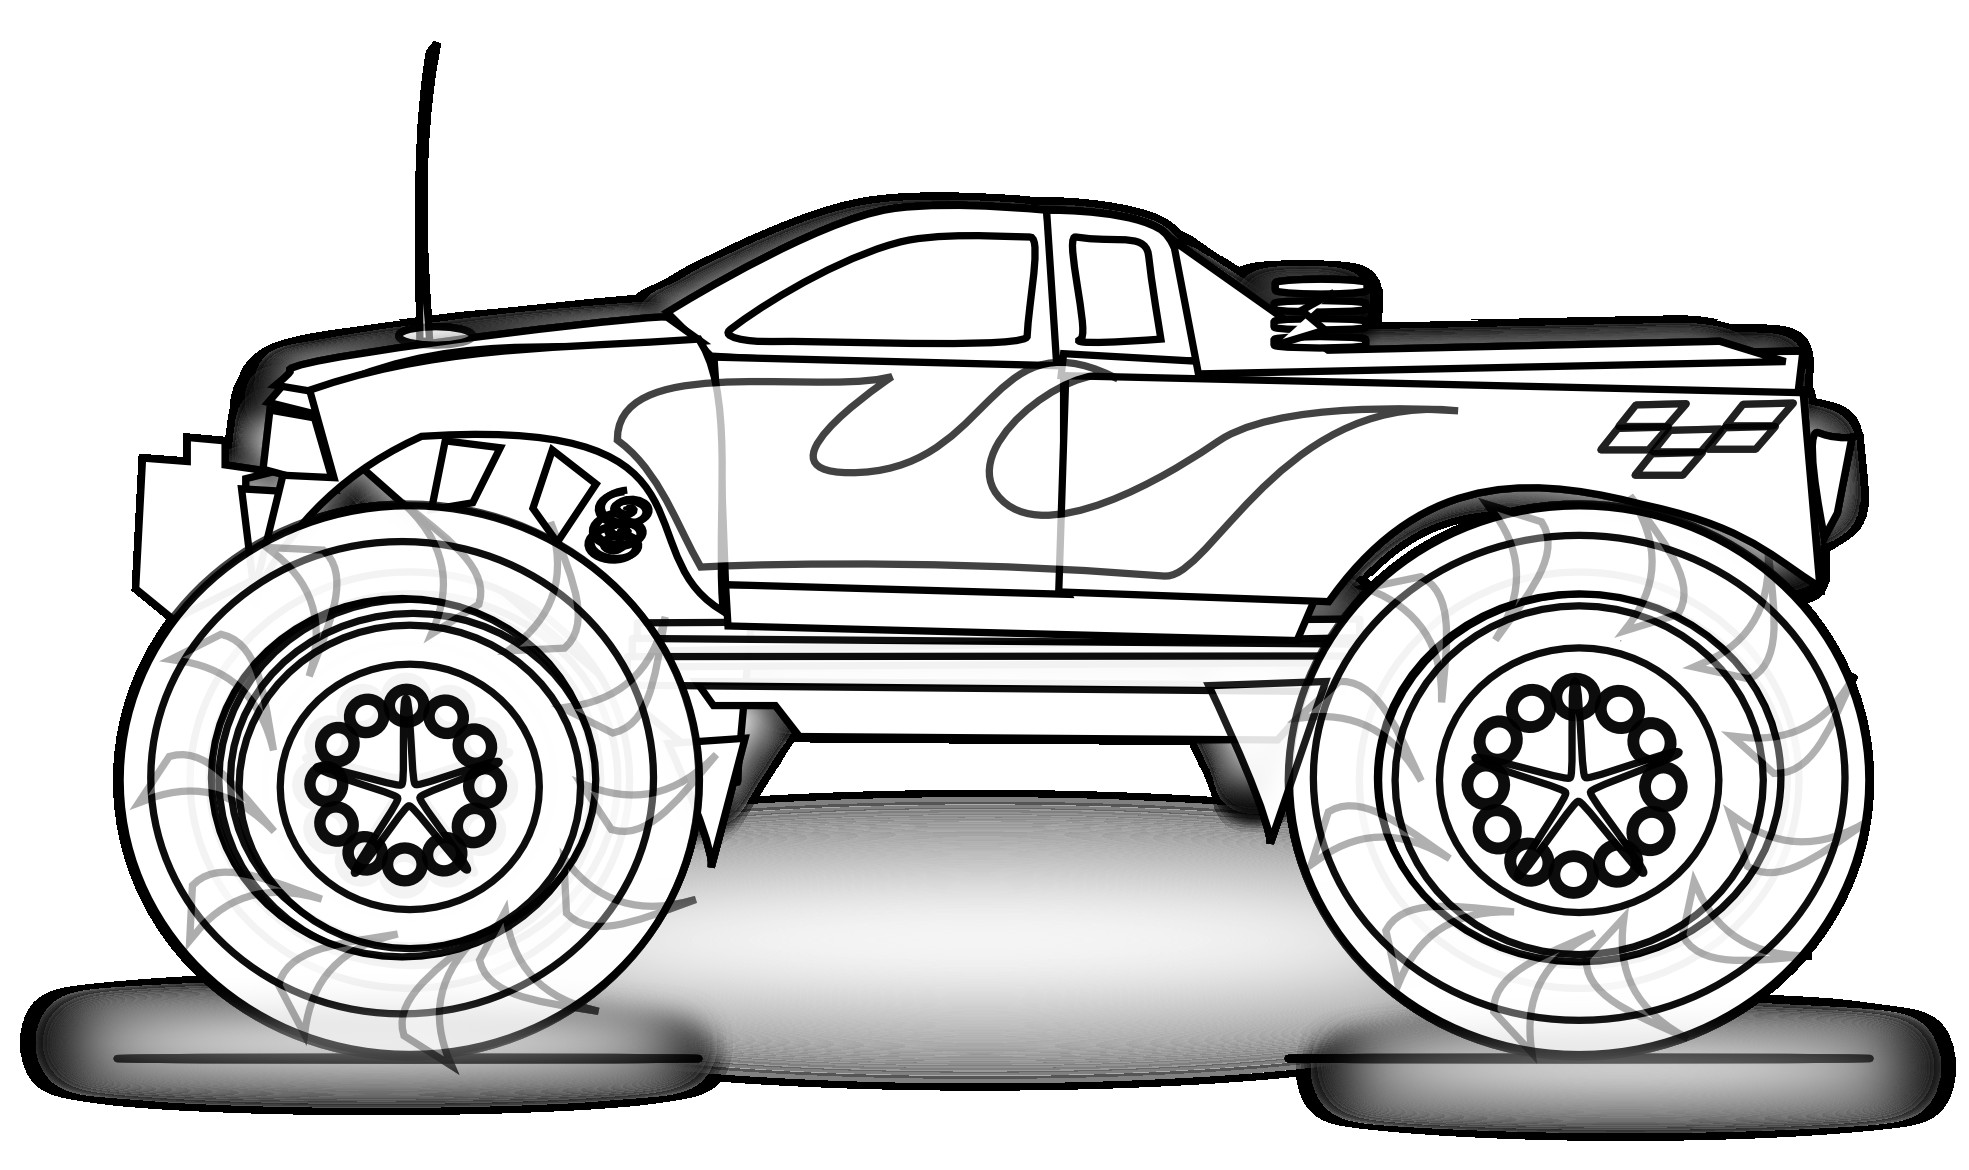 racecar coloring page race cars coloring page free printable coloring pages coloring racecar page